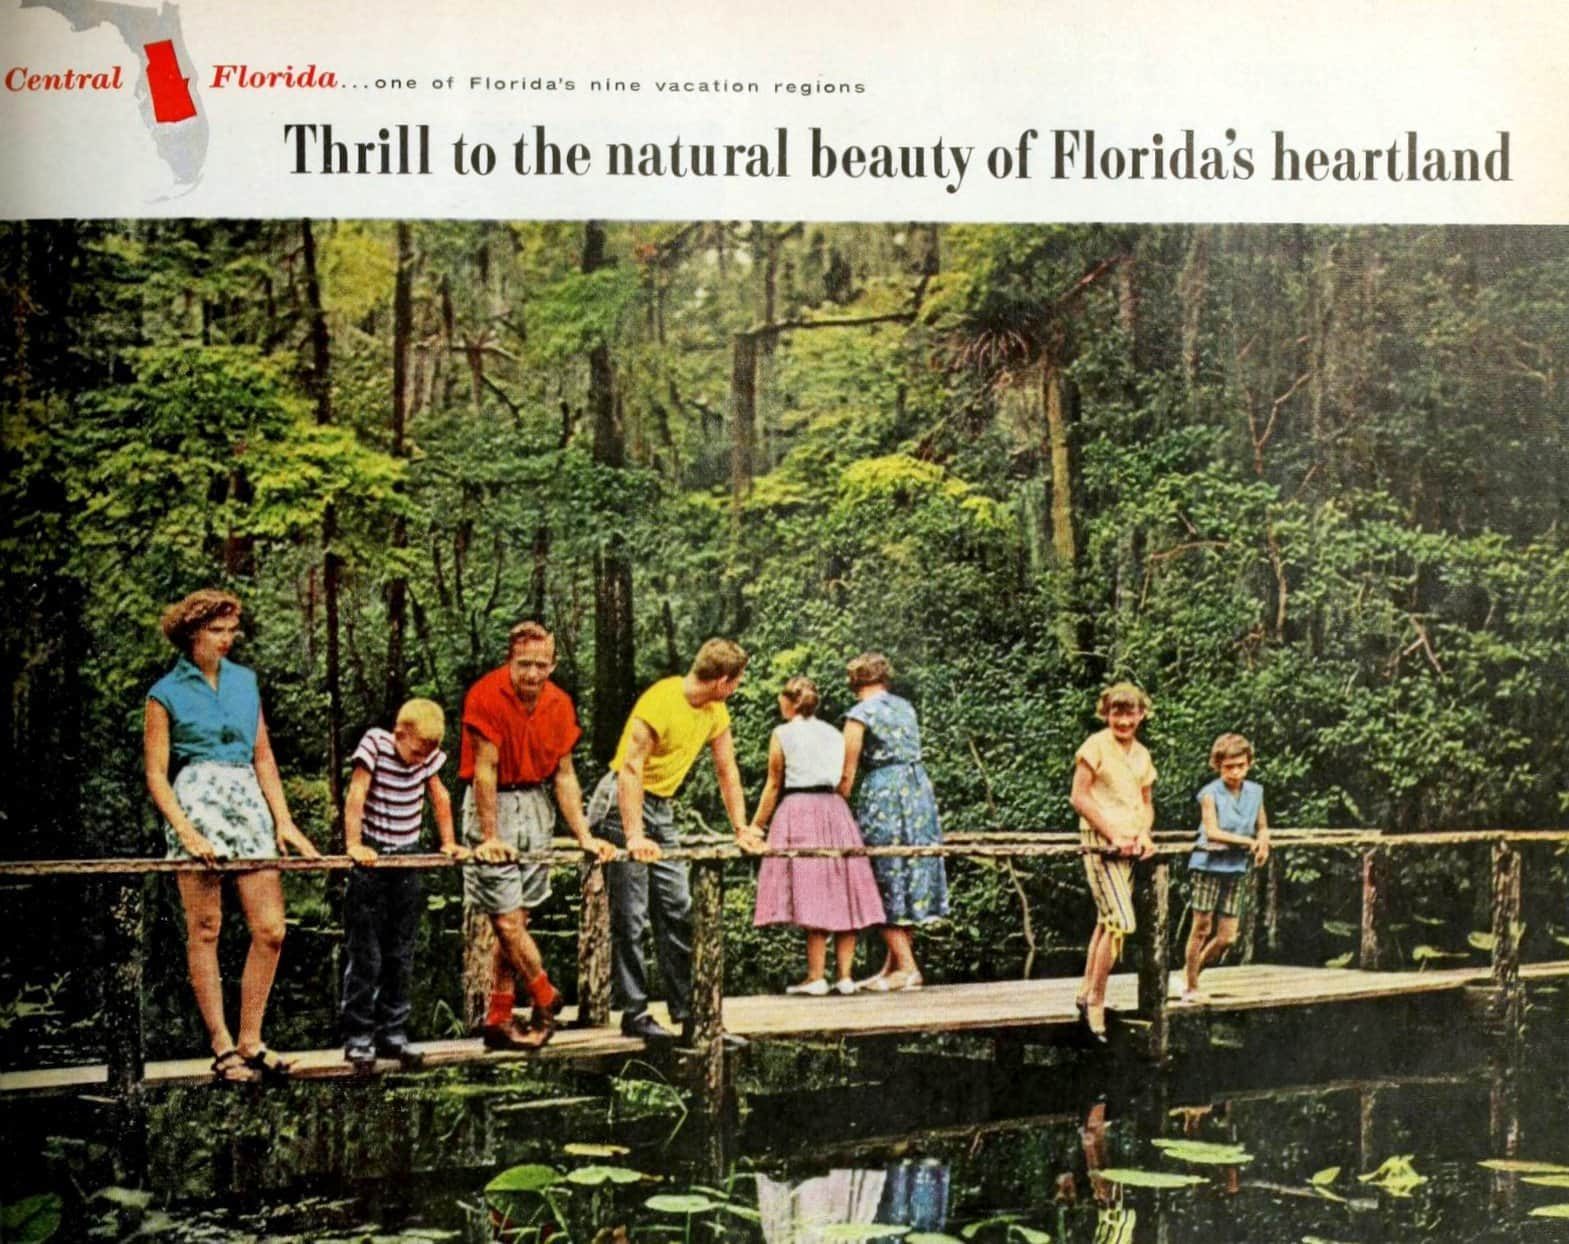 See the natural wonders of old Central Florida (1961)